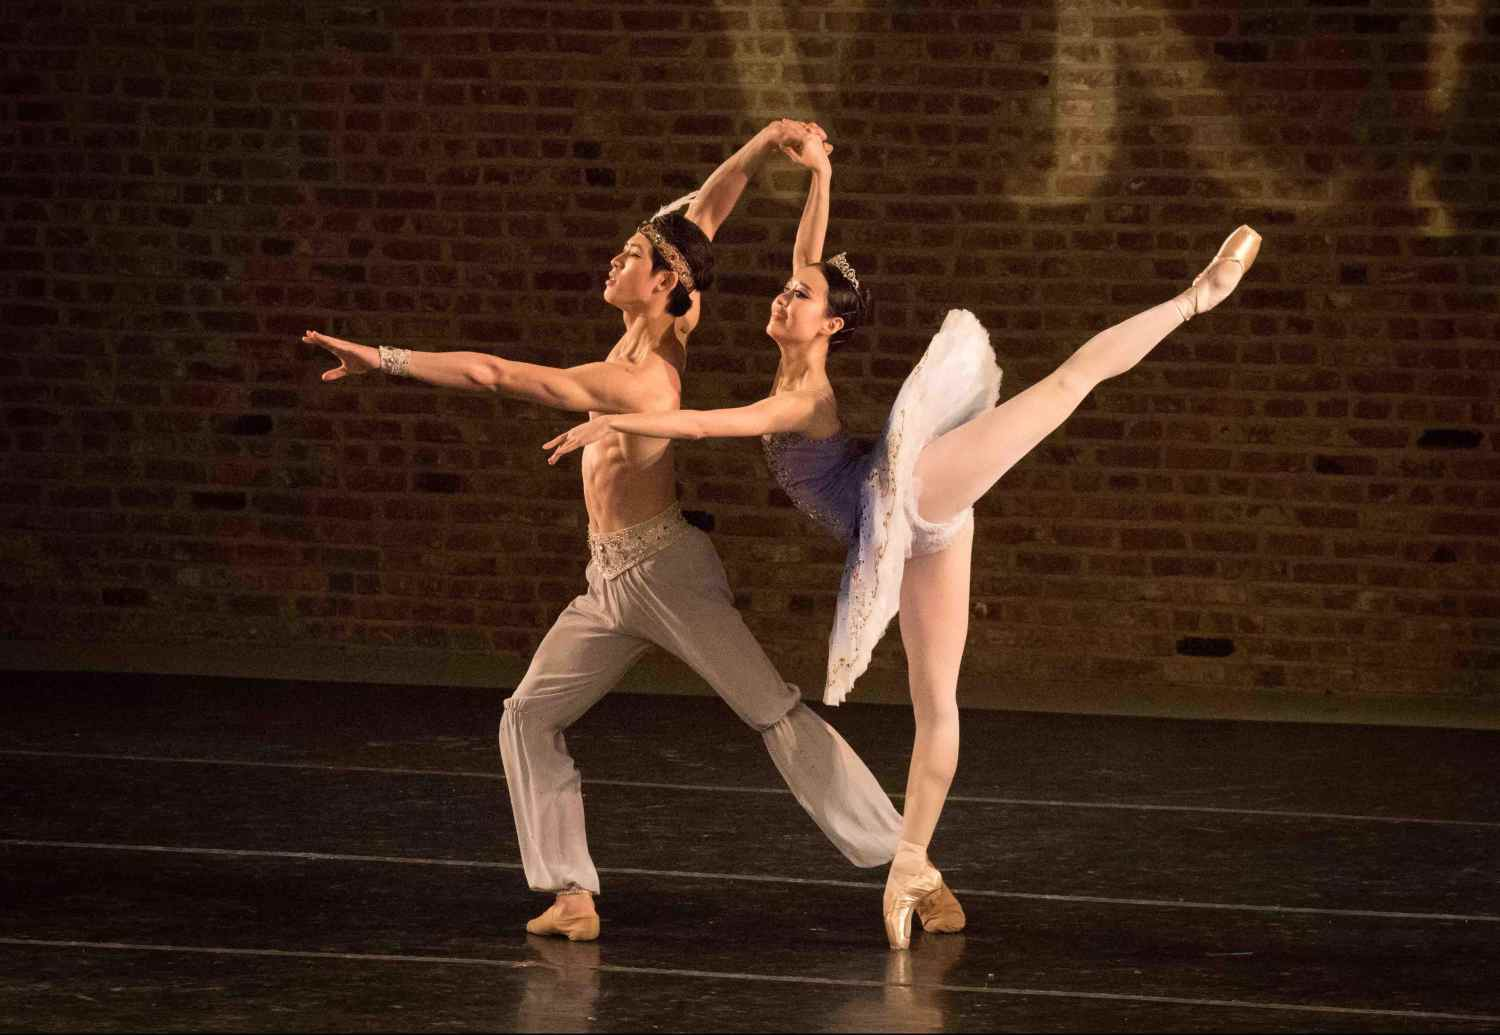 Da Woon Lee and Dong Hyeon Kwak, Silver Medalists Valentina Kozlova IBC, 2016, Ballet Competitions Discover Future Stars